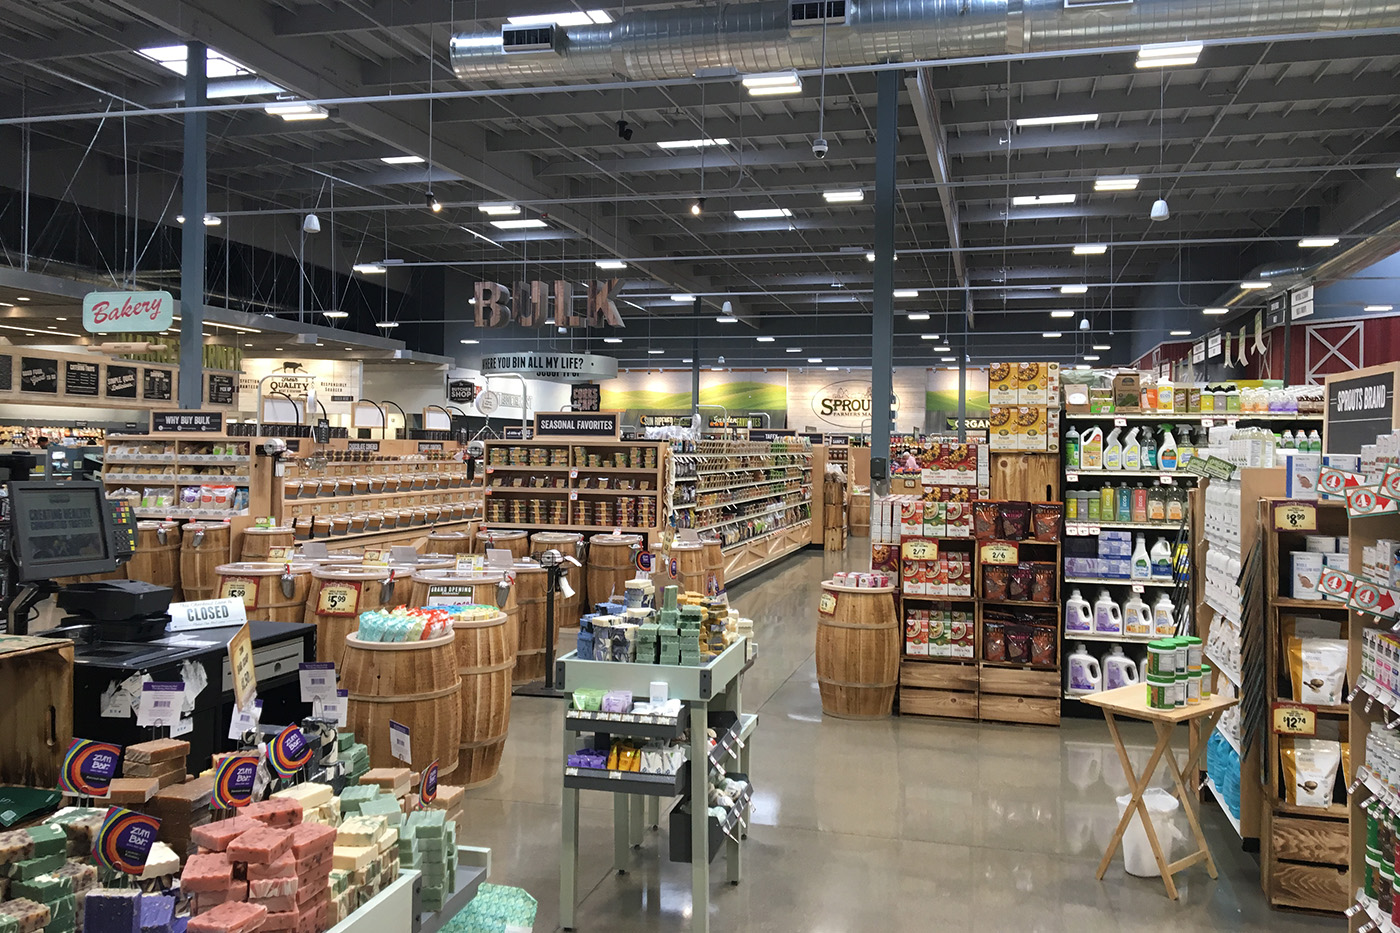 San Luis Obispo's very own Sprouts Farmers Market now open